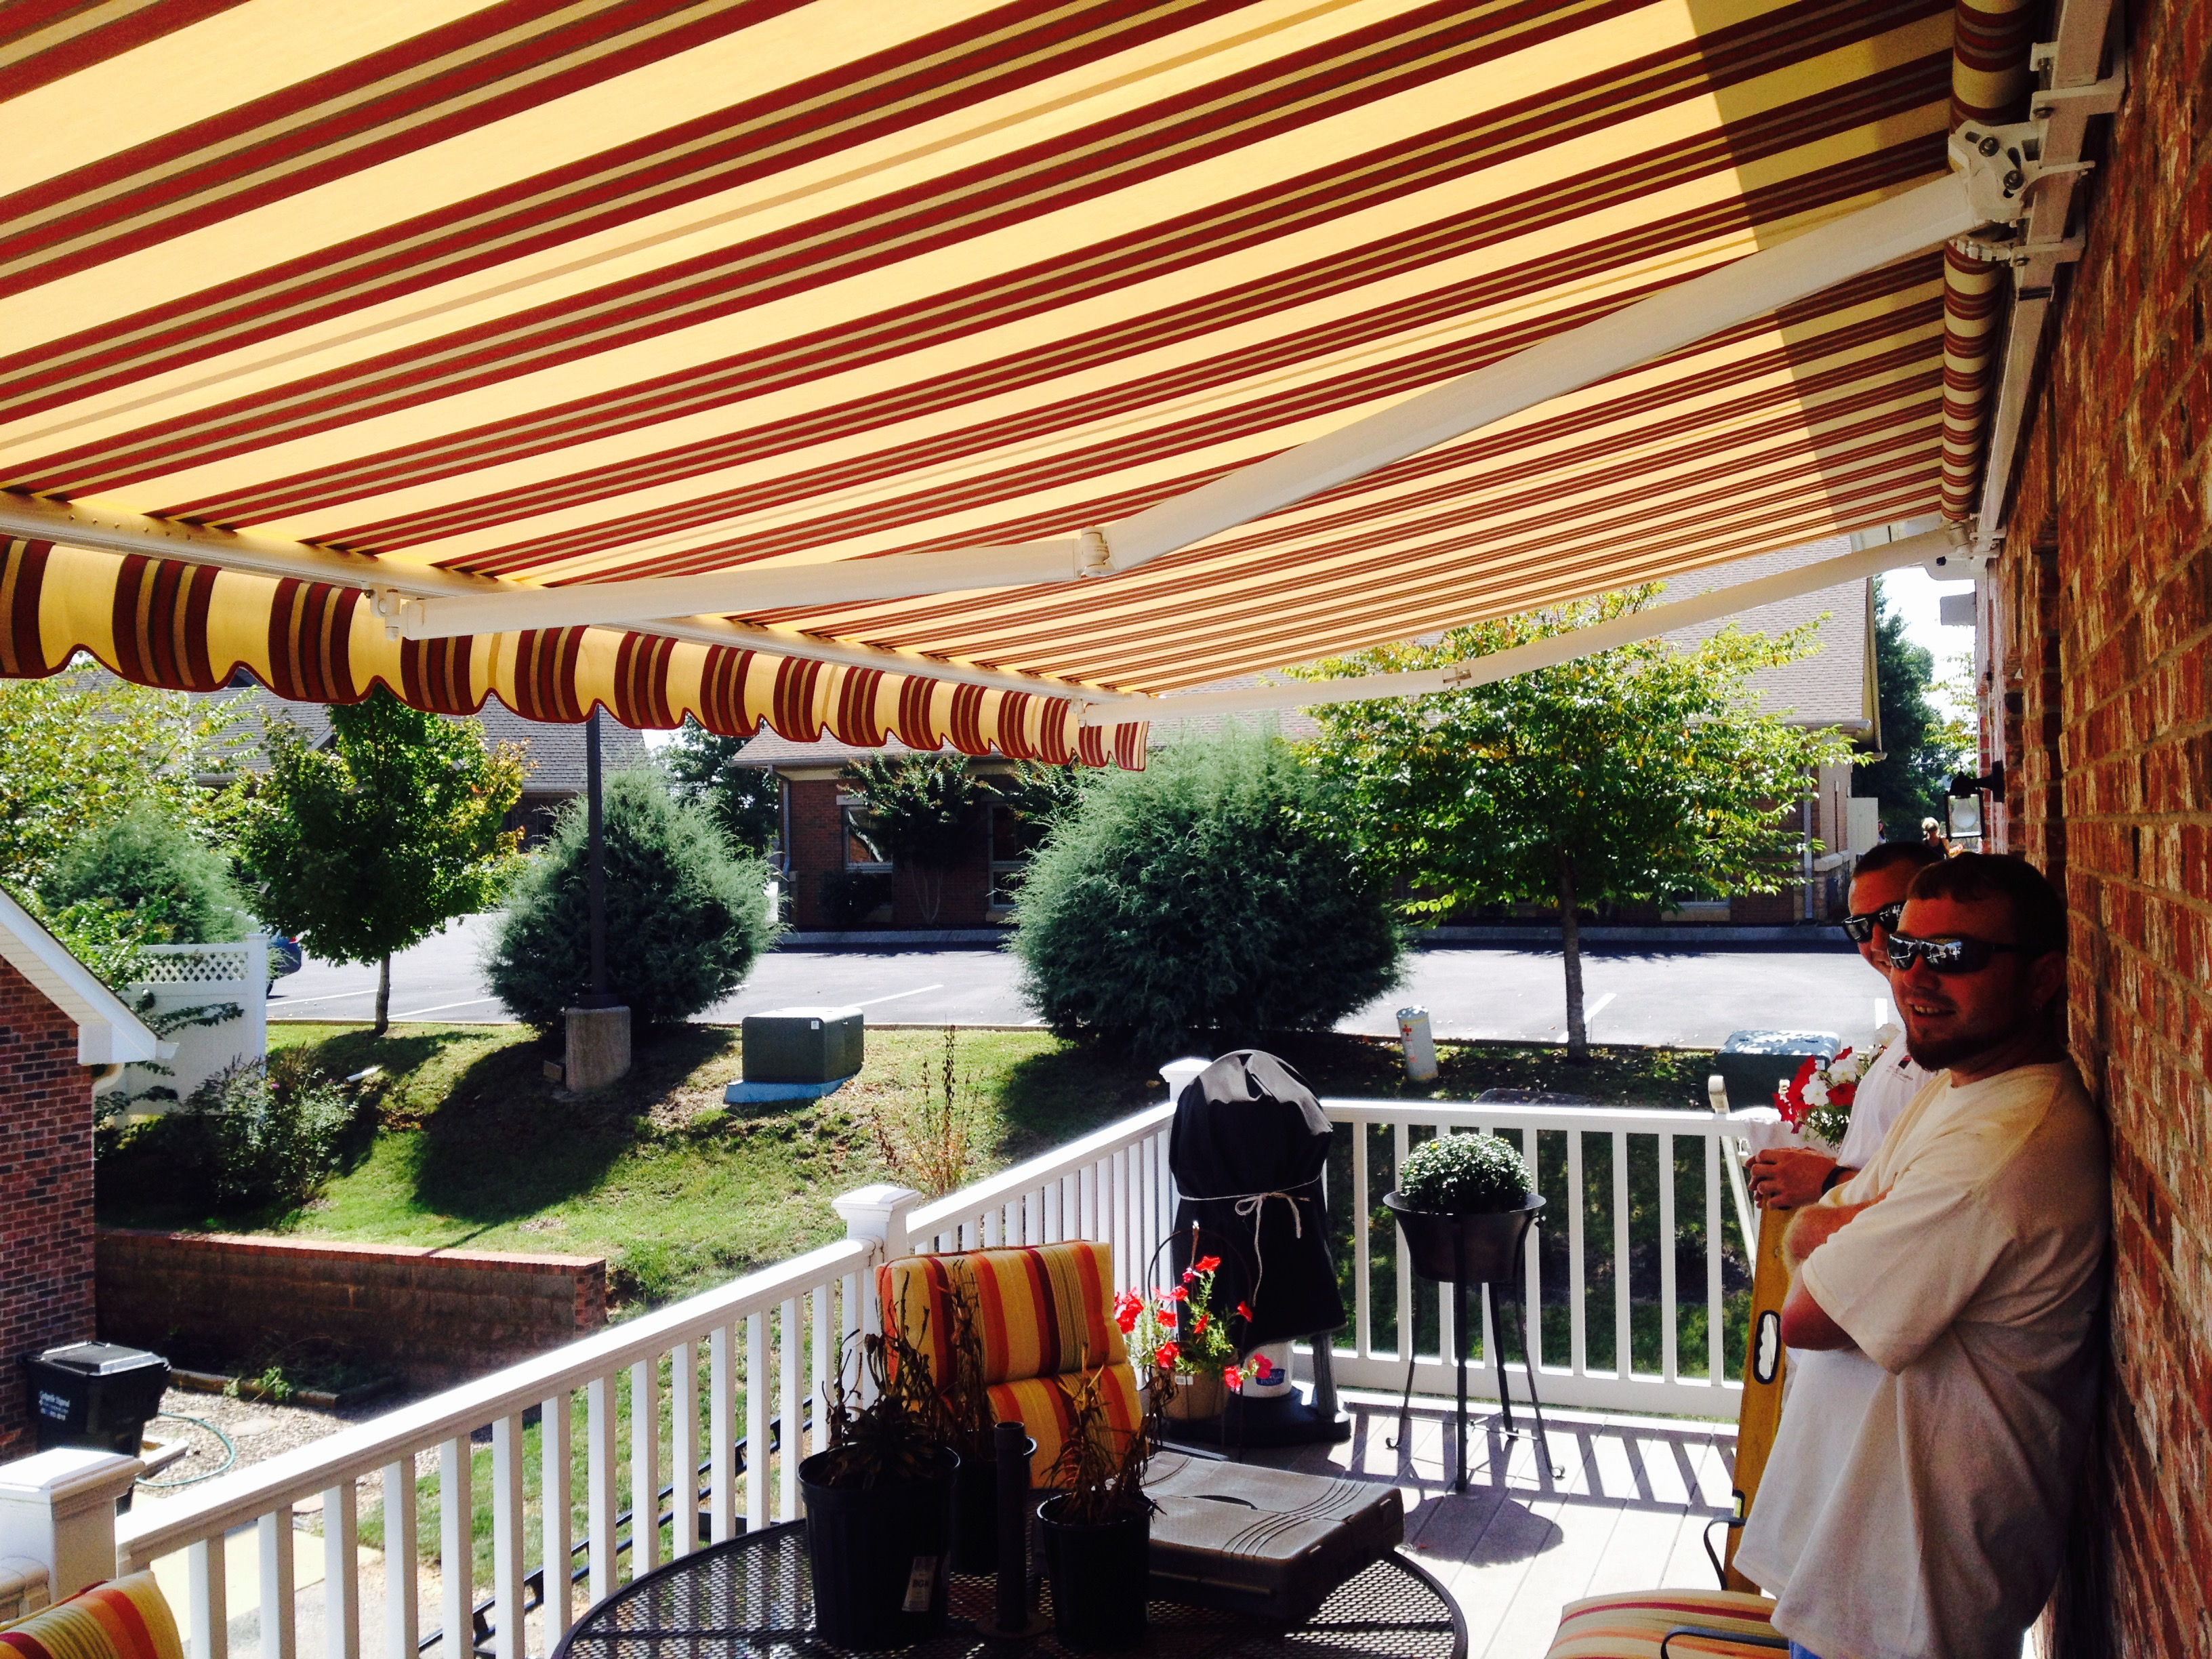 Awnings Amp Canopies Over Tn 931 980 9314 Info